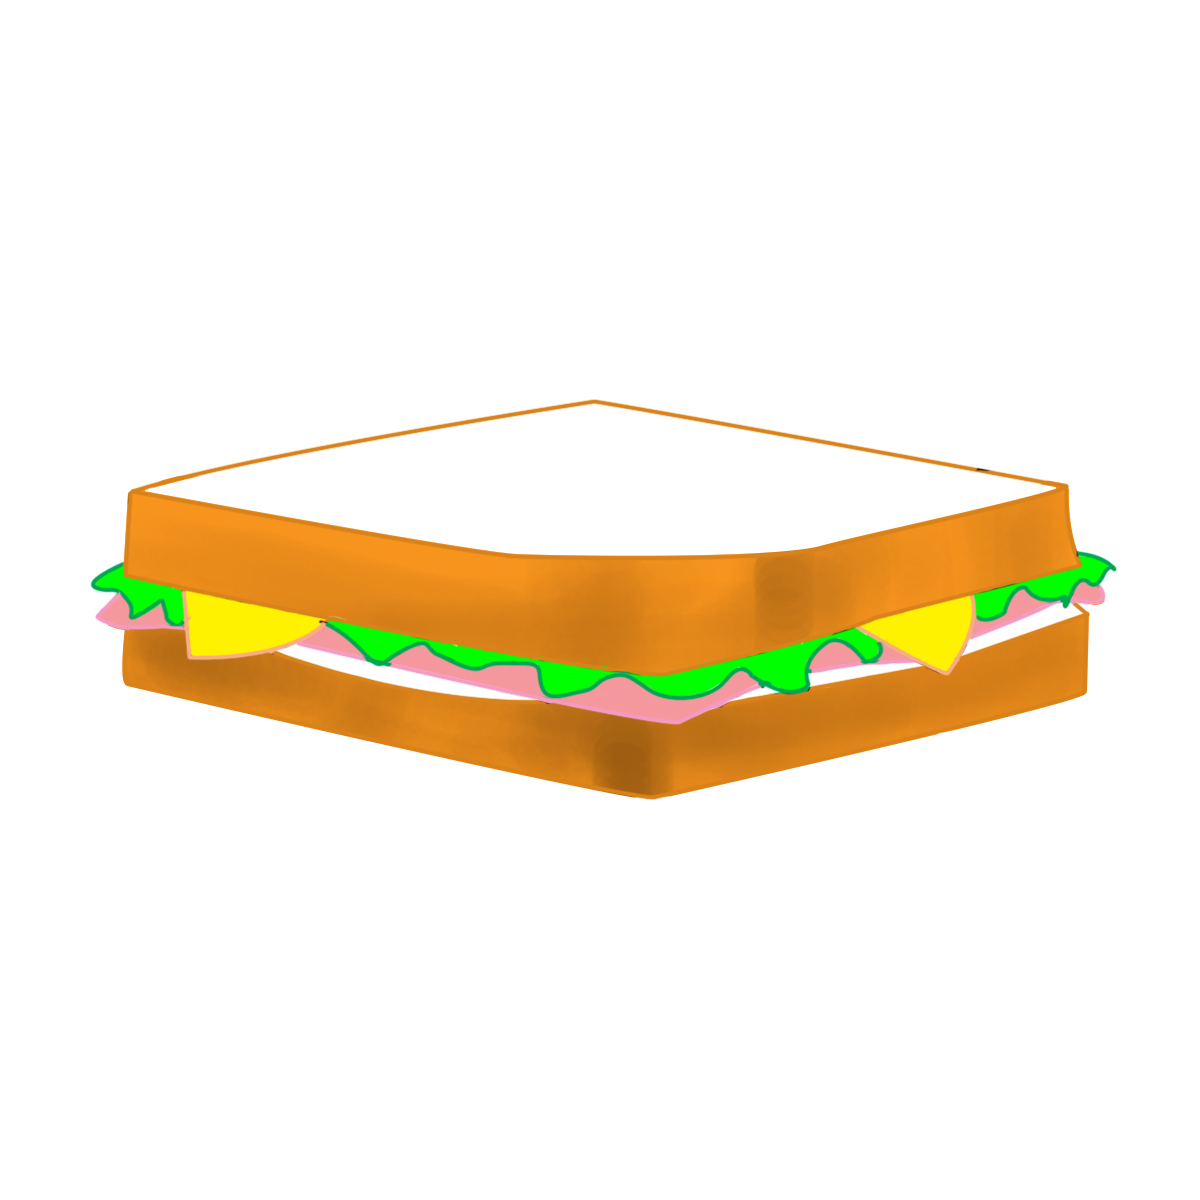 sub-sandwich-drawing-sandwich-drawing-sandwich-color-step-8jpg-awesome ...